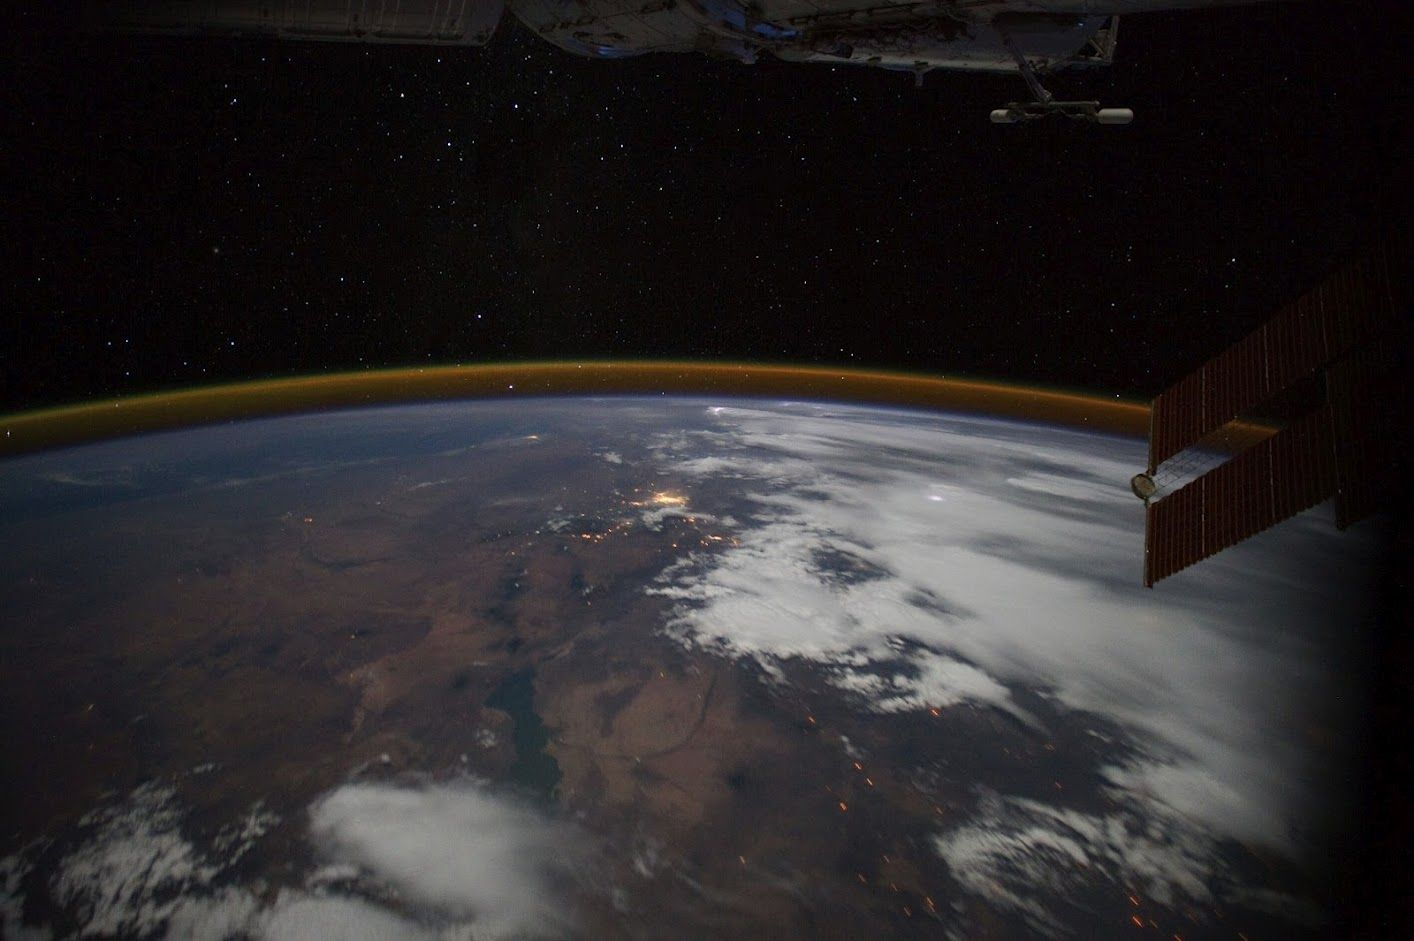 Kenya at the coast of the Indian Ocean photographed from